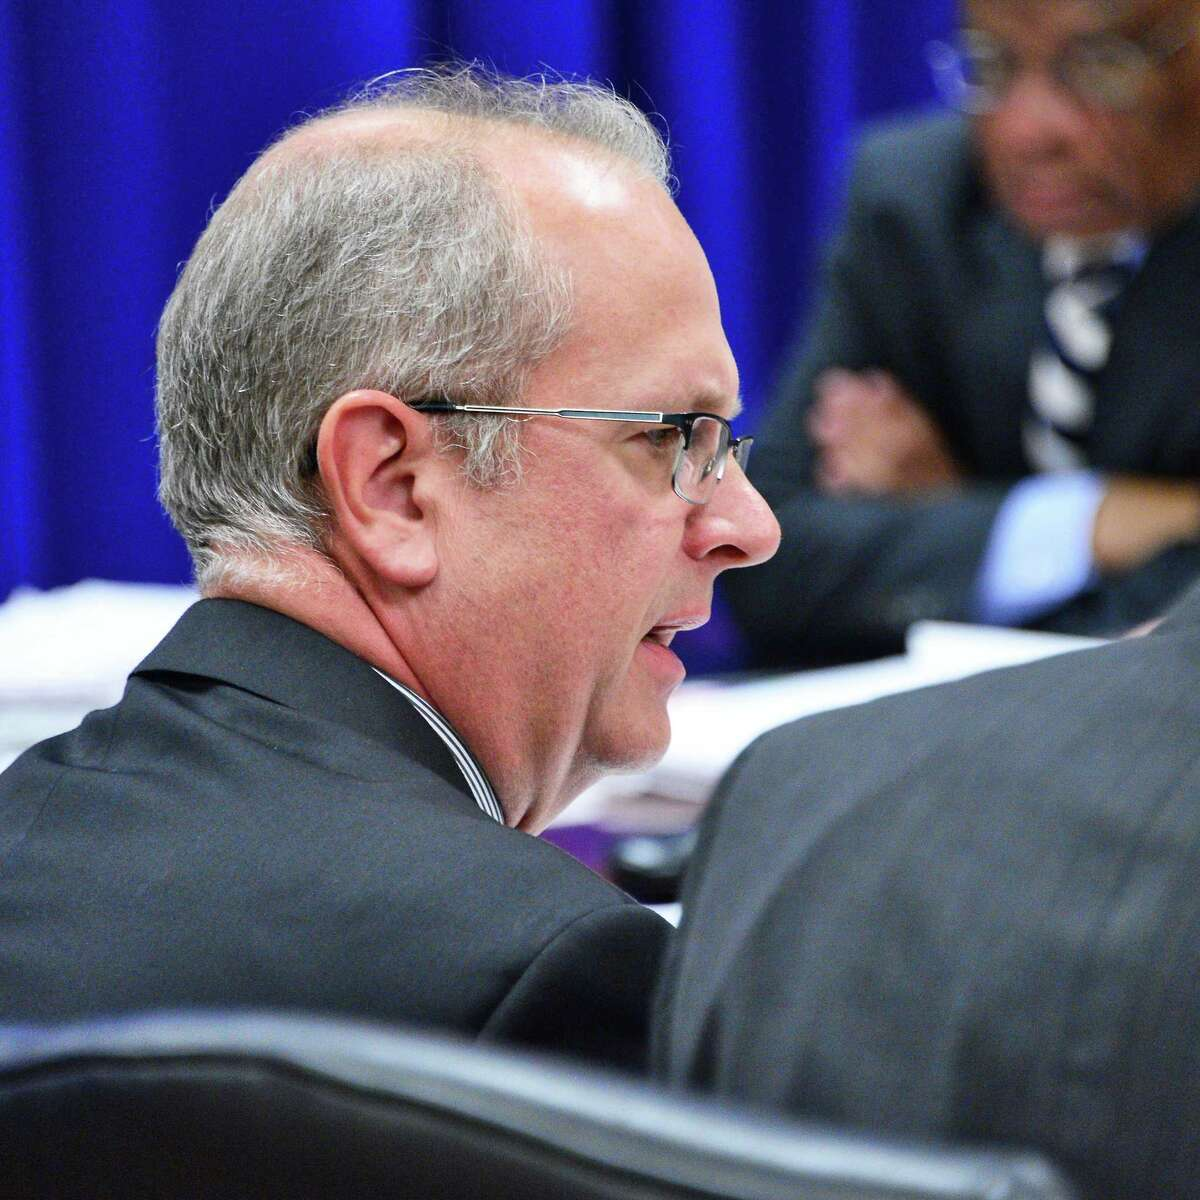 J. Gerard McAuliffe, Jr. during a meeting of the NYS Joint Commission on Public Ethics Tuesday Nov. 28, 2017 in Albany, NY. (John Carl D'Annibale / Times Union)